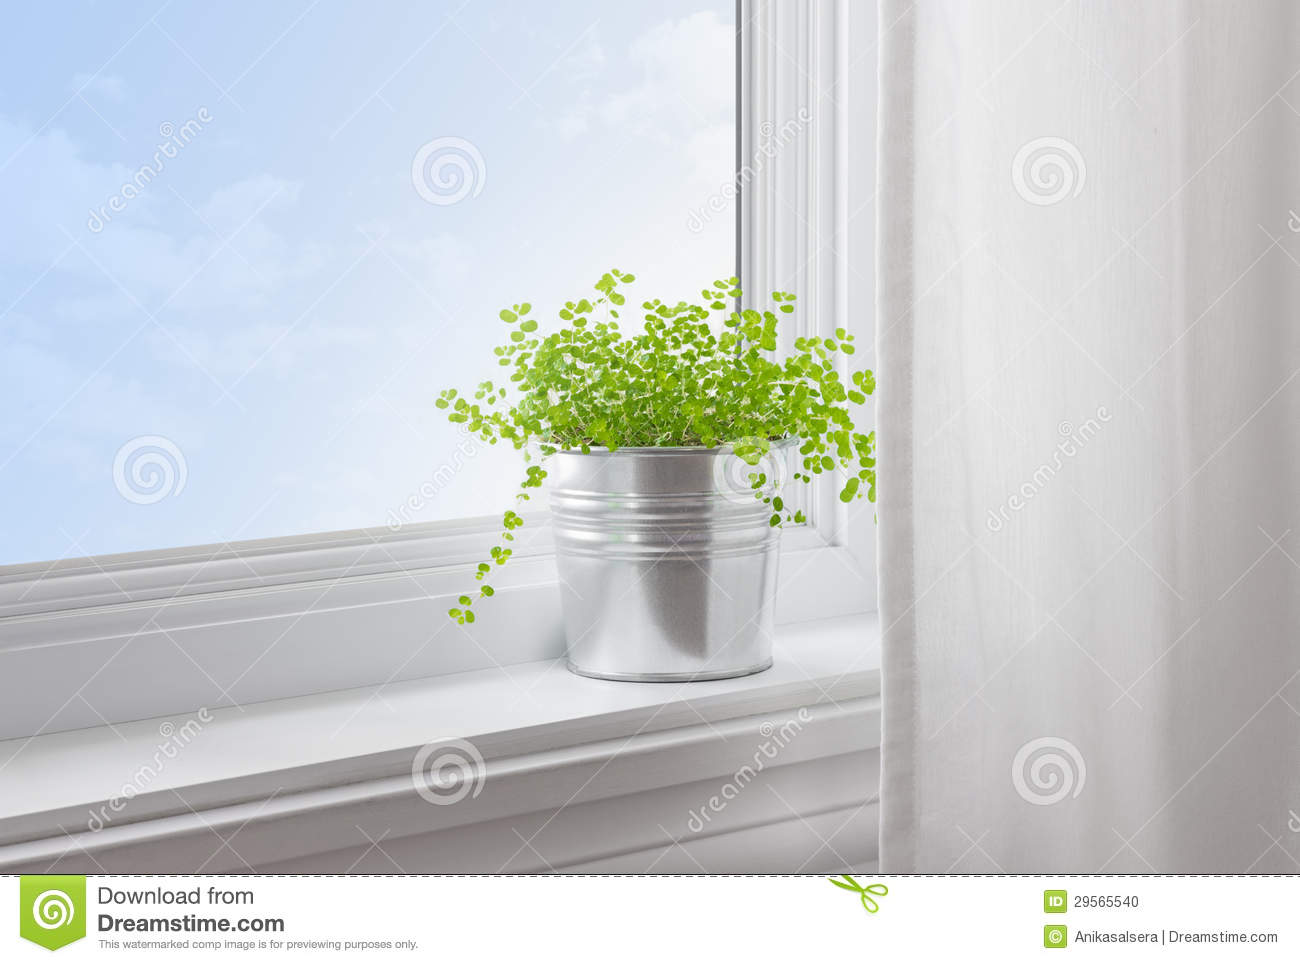 Plante verte dans une maison moderne photo stock image for Plante maison